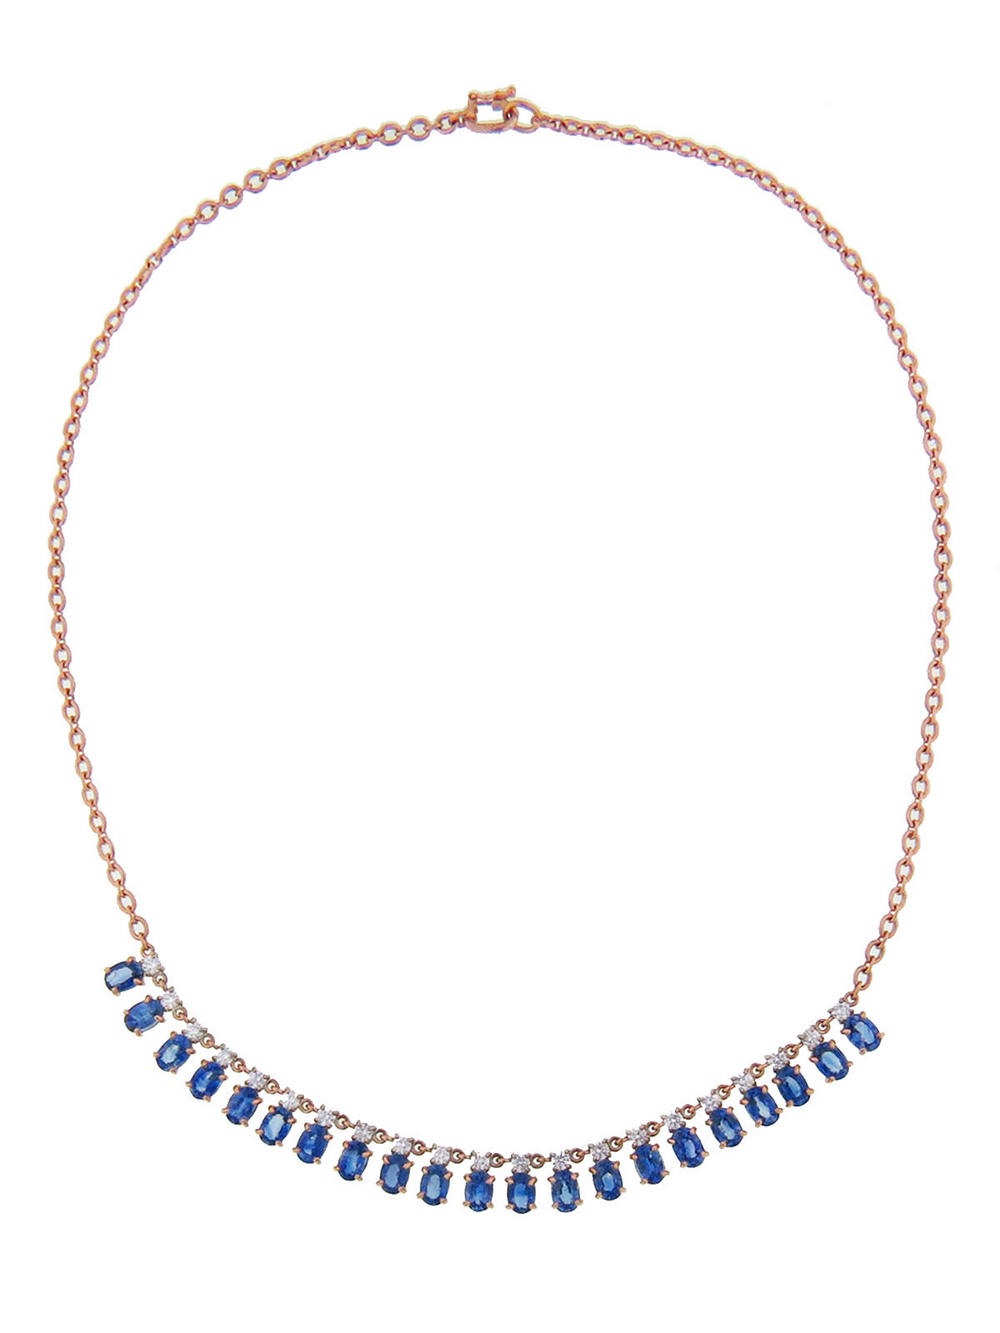 Irene Neuwirth Ceylon sapphire and diamond necklace in rose gold, $19.960,  available at Ylang23 .